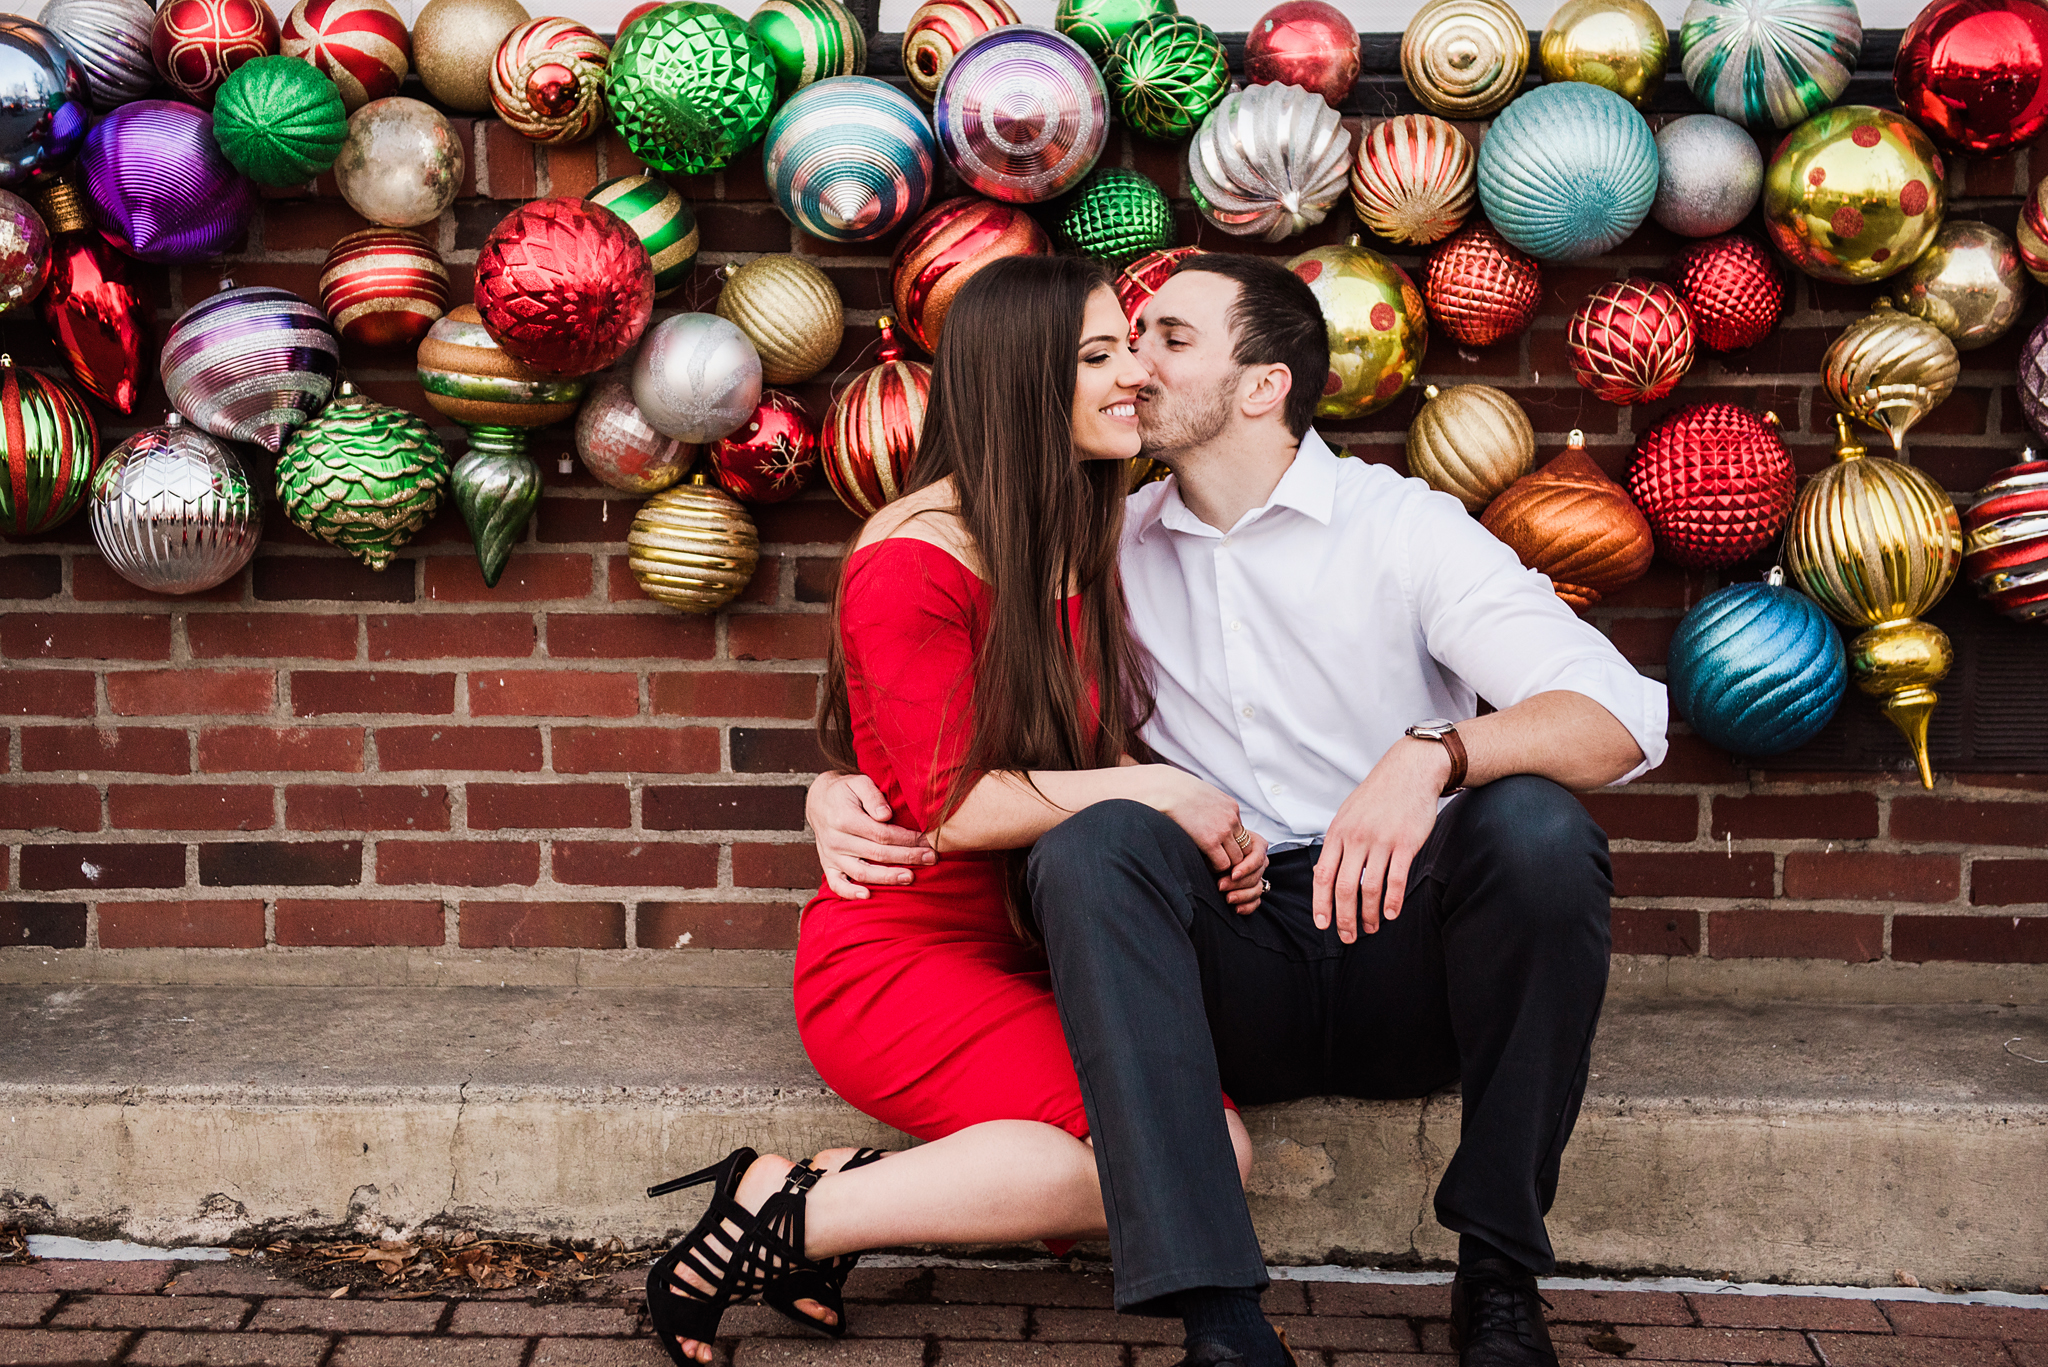 Schoen_Place_Rochester_Engagement_Session_JILL_STUDIO_Rochester_NY_Photographer_DSC_2325.jpg